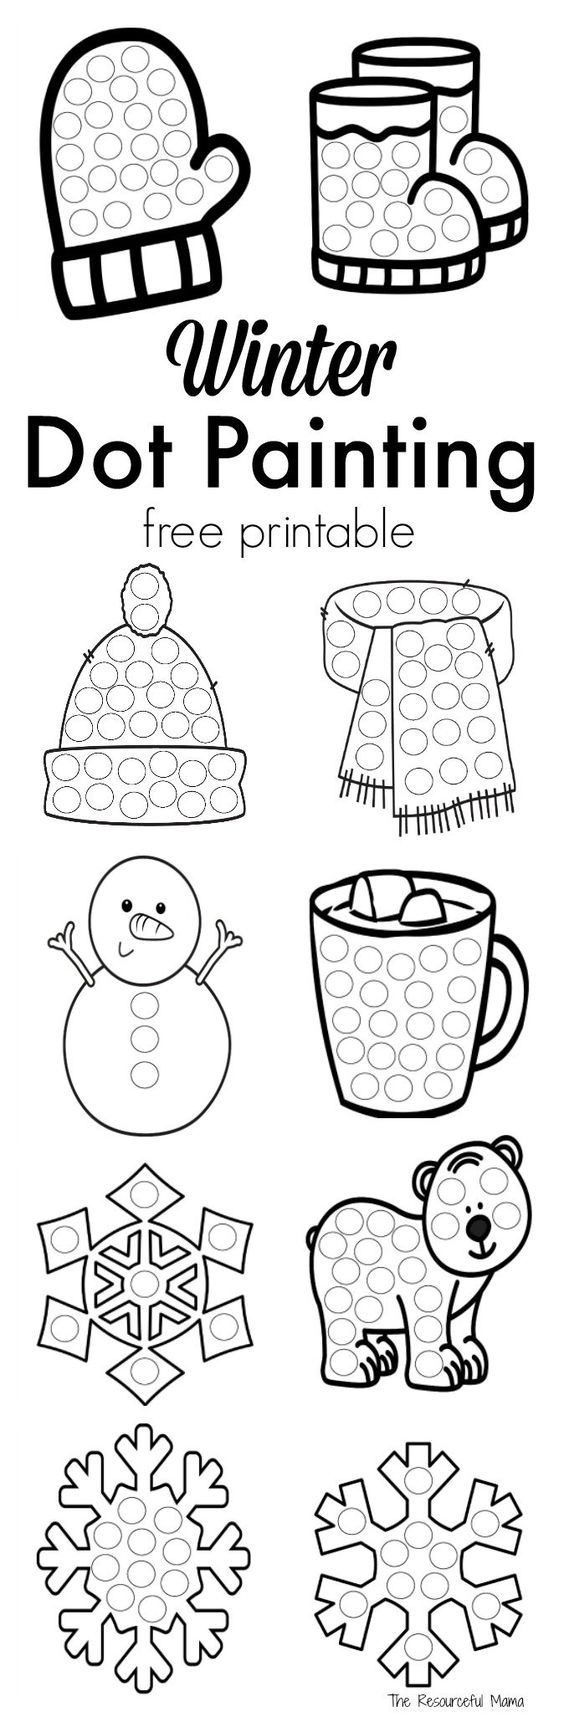 winter dot painting free printable for kids vehicles and toddlers. Black Bedroom Furniture Sets. Home Design Ideas